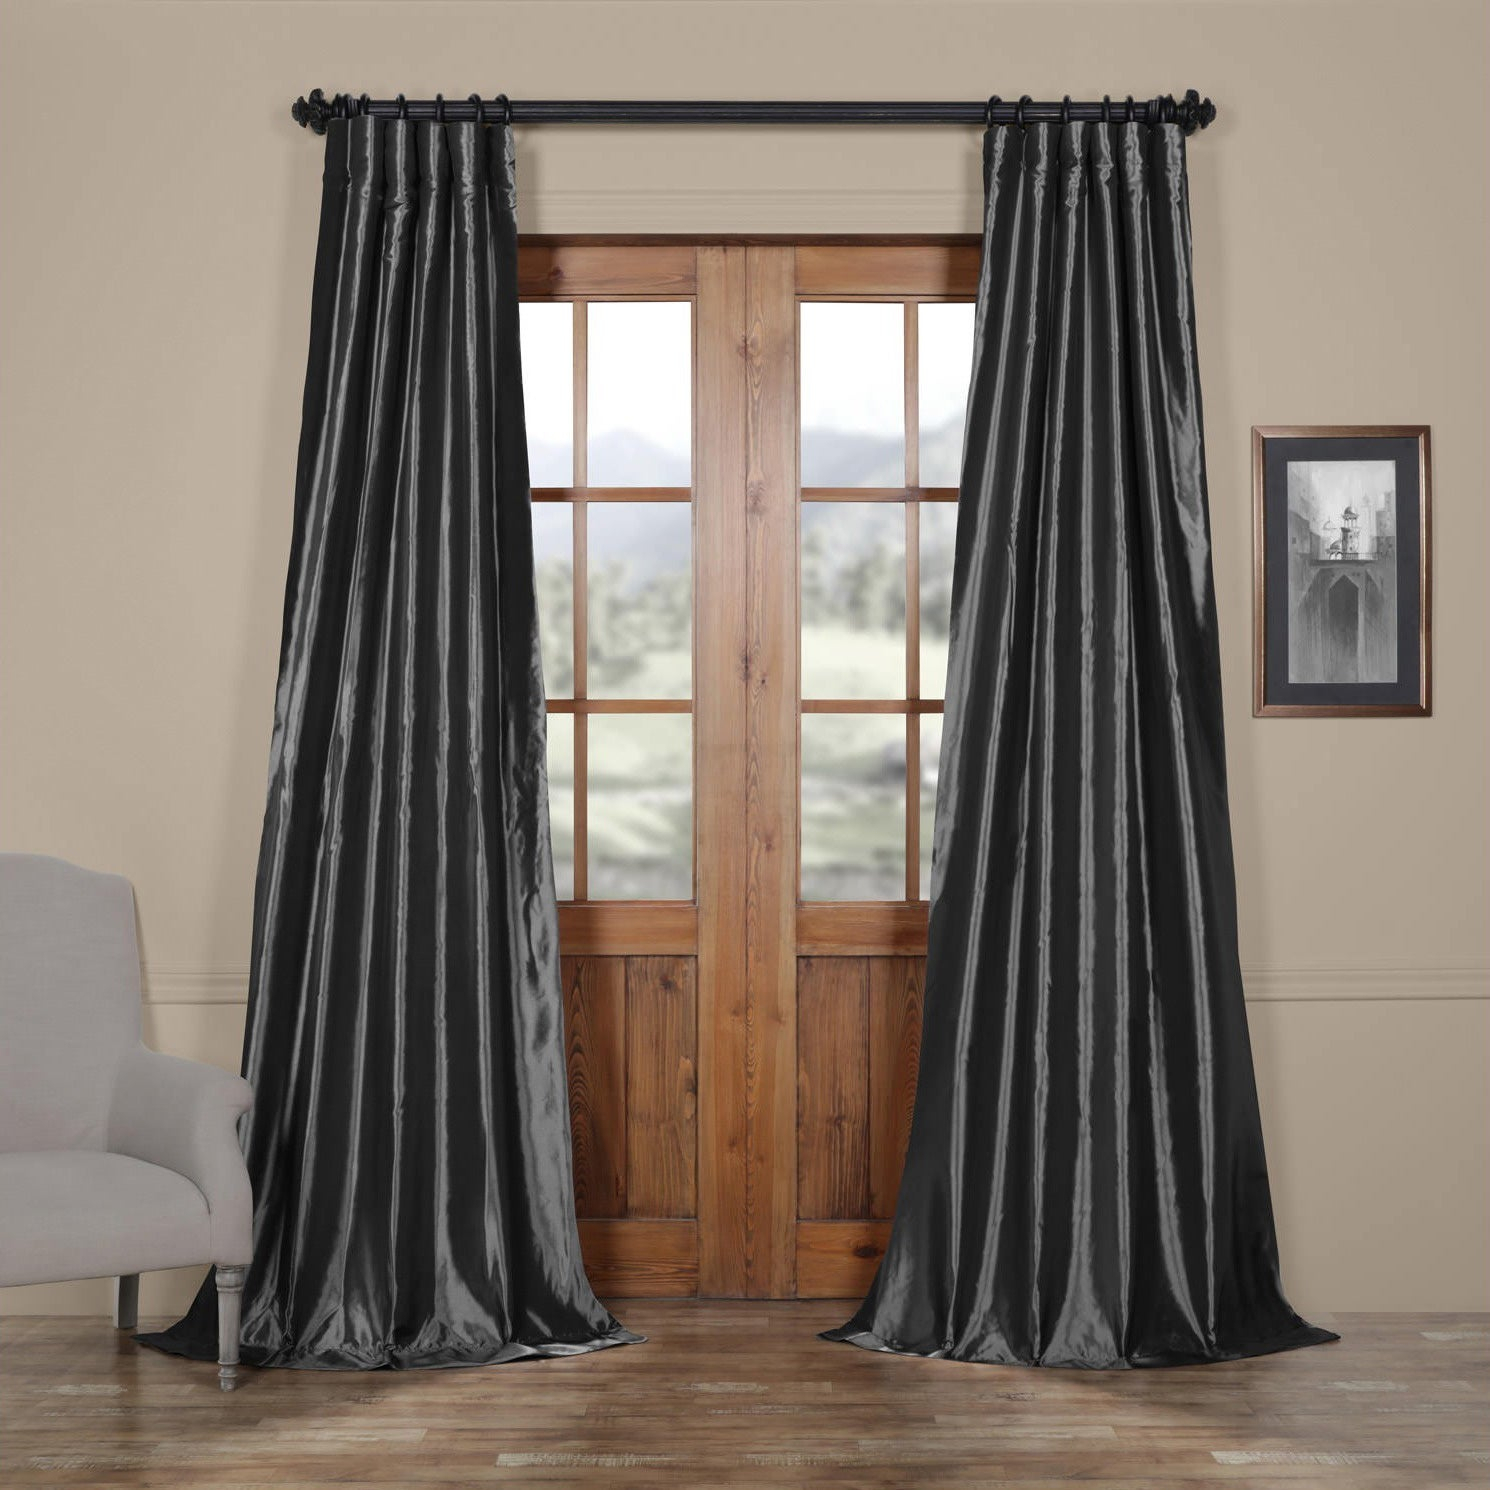 Details About Single Curtain Panel 50 X 96 In Solid Faux Silk Taffeta Graphite Room Darkening Intended For Faux Silk Taffeta Solid Blackout Single Curtain Panels (View 3 of 20)